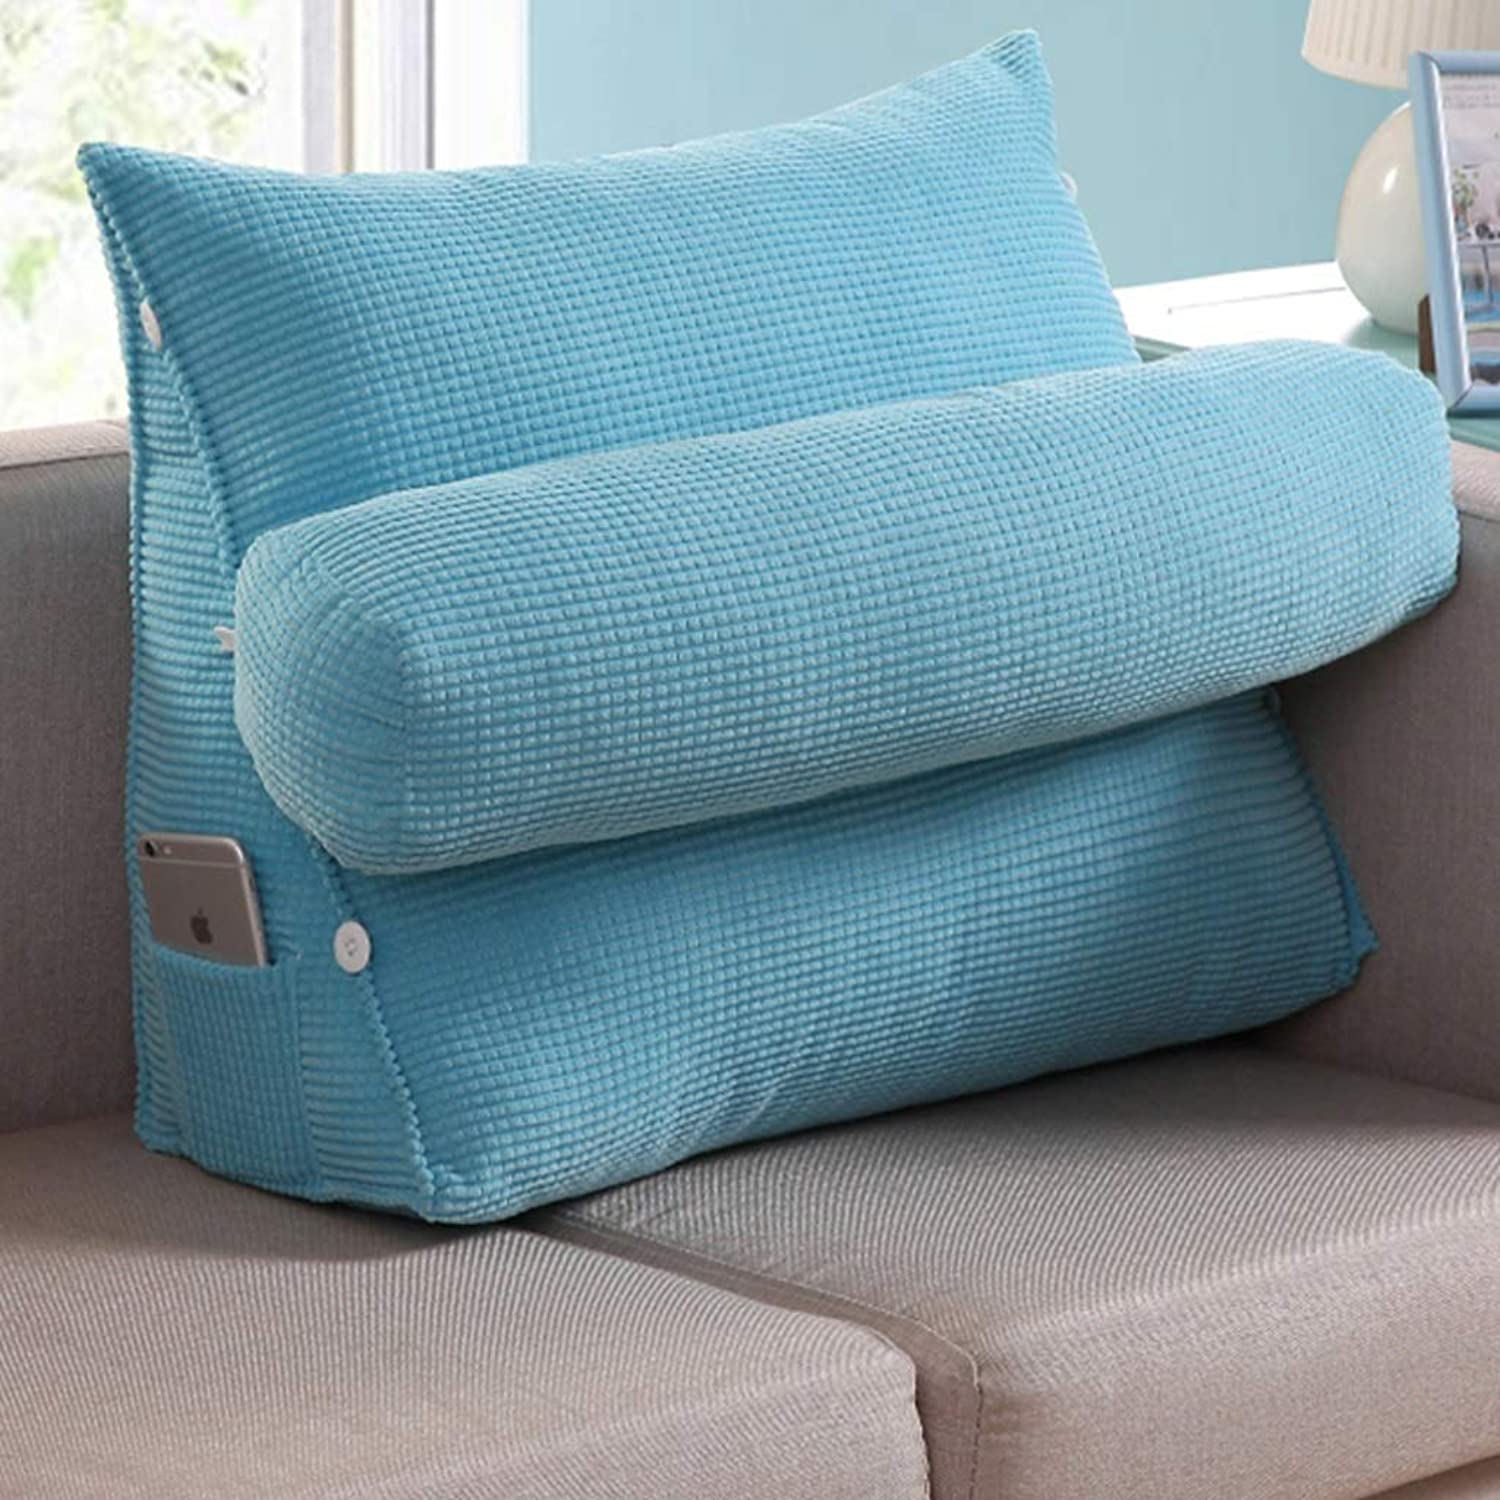 TYUIO Big Reading & Bed Rest Pillow with Arms - Sitting Up Tall - Premium 100% Polyester Fiber, Detachable Neck Roll, Removable Covers & Zipper for Adjustable (color   bluee, Size   45cm)